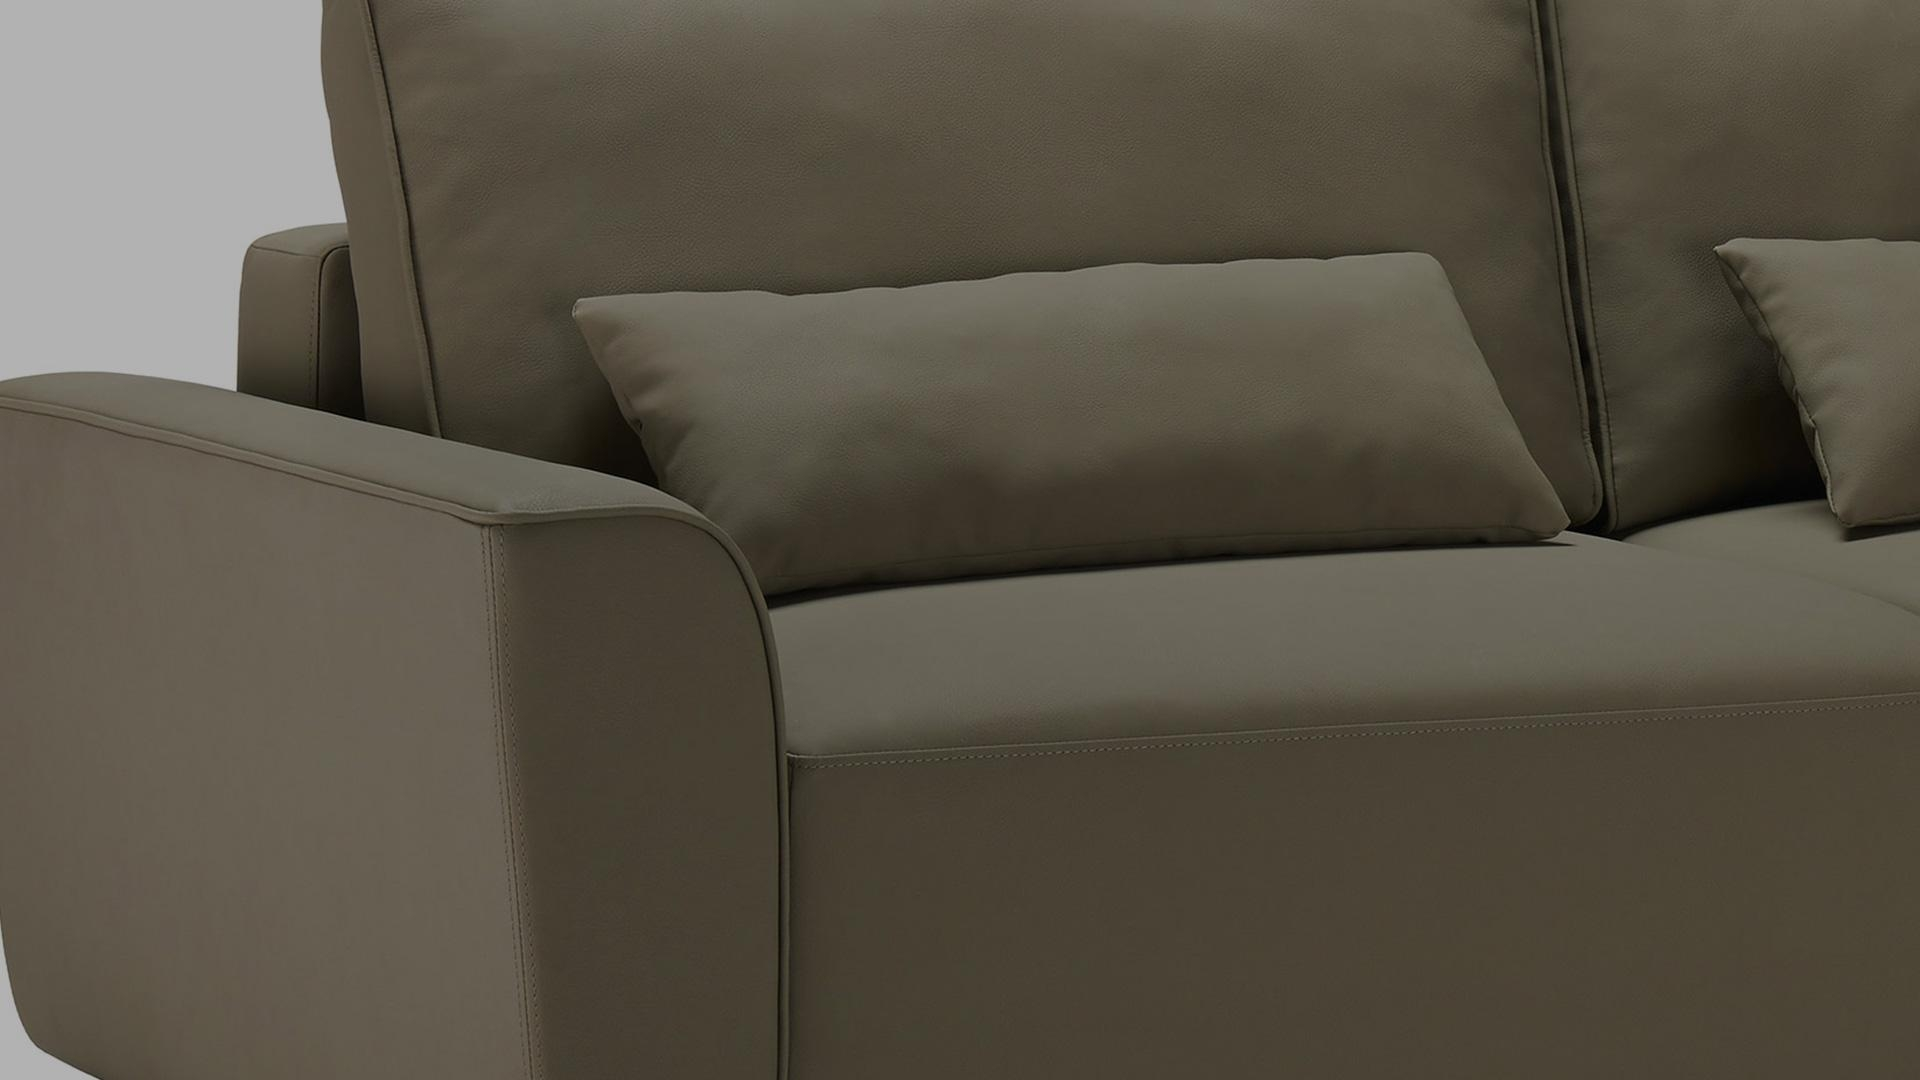 Sofa Beds Archives | Expand Furniture – Folding Tables, Smarter Intended For Comfortable Sofas And Chairs (View 11 of 20)